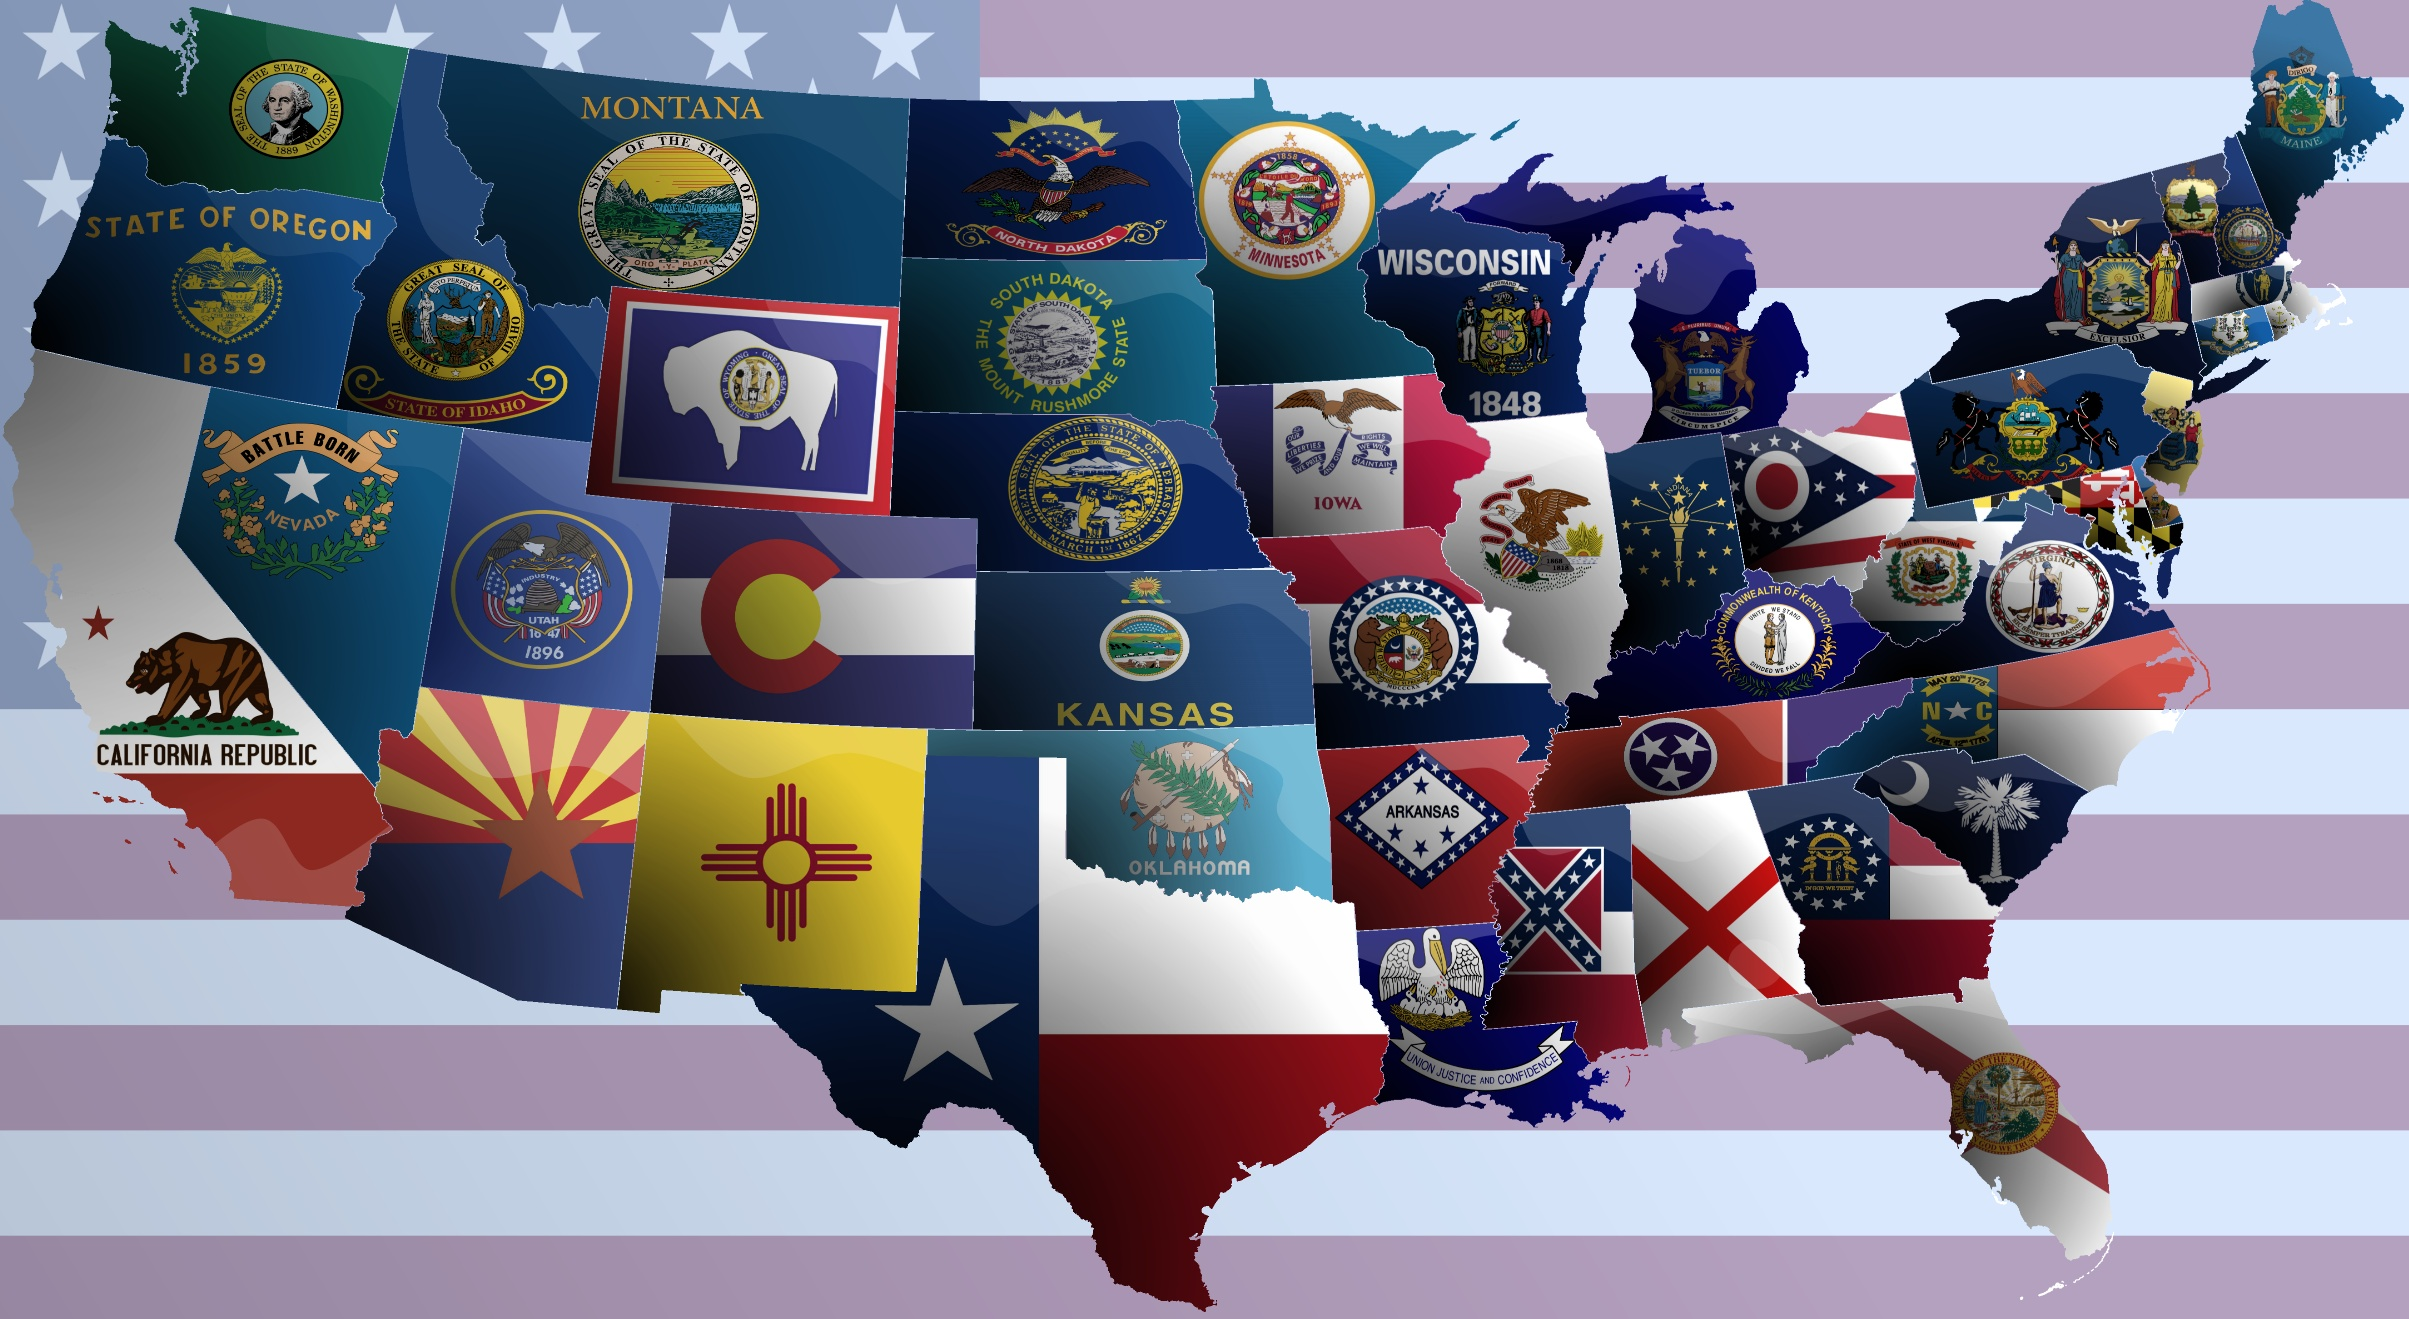 Map Of All The States In America.United States Of America Flag Map By Jaysimons On Deviantart